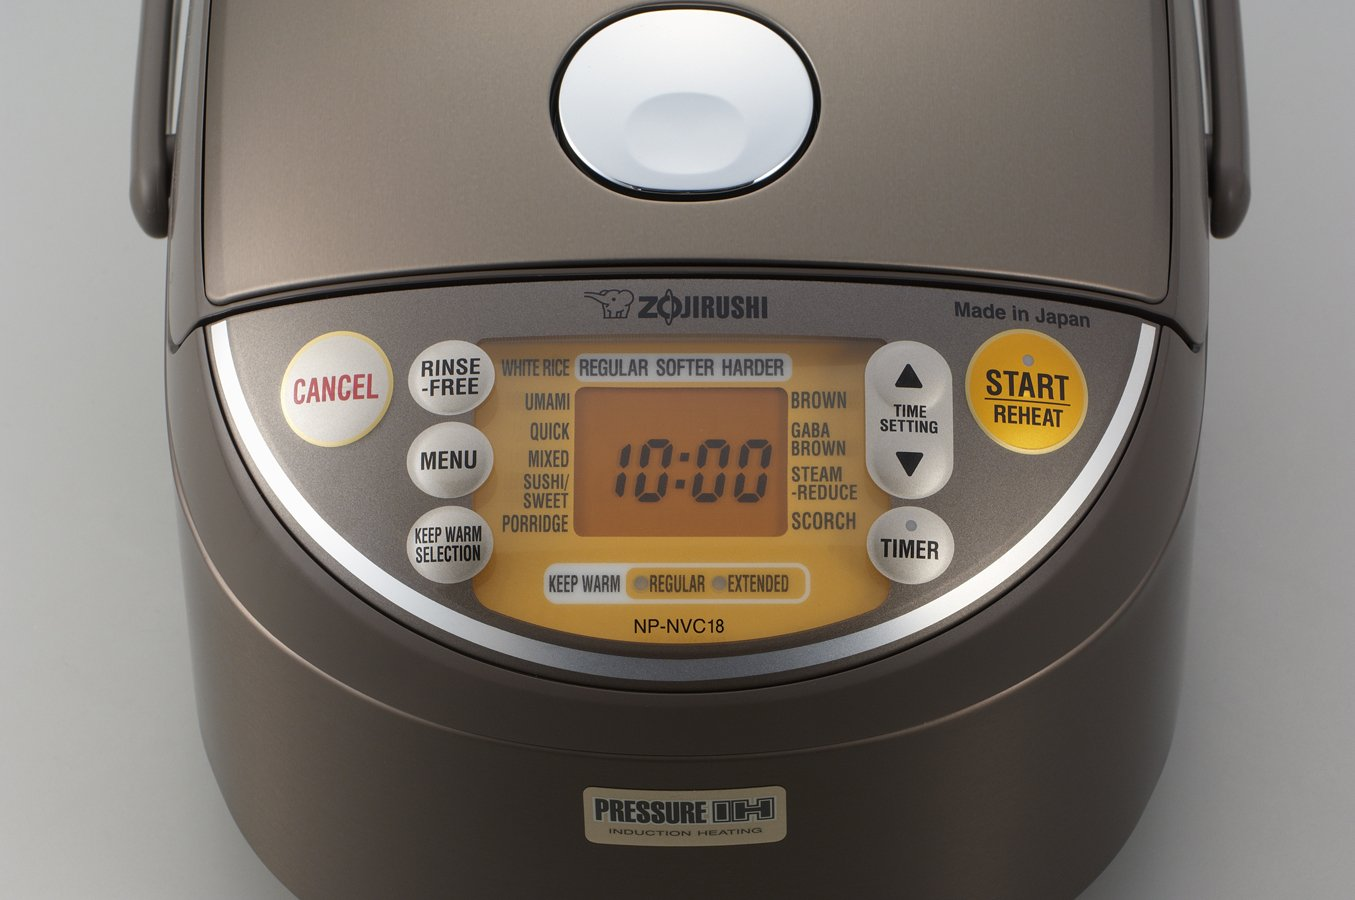 Zojirushi Induction Heating Pressure Rice Cooker Free Pcb Design Software Freepcb V1355 Warmer 18 Liter Stainless Brown Np Nvc18 Cookers Kitchen Dining